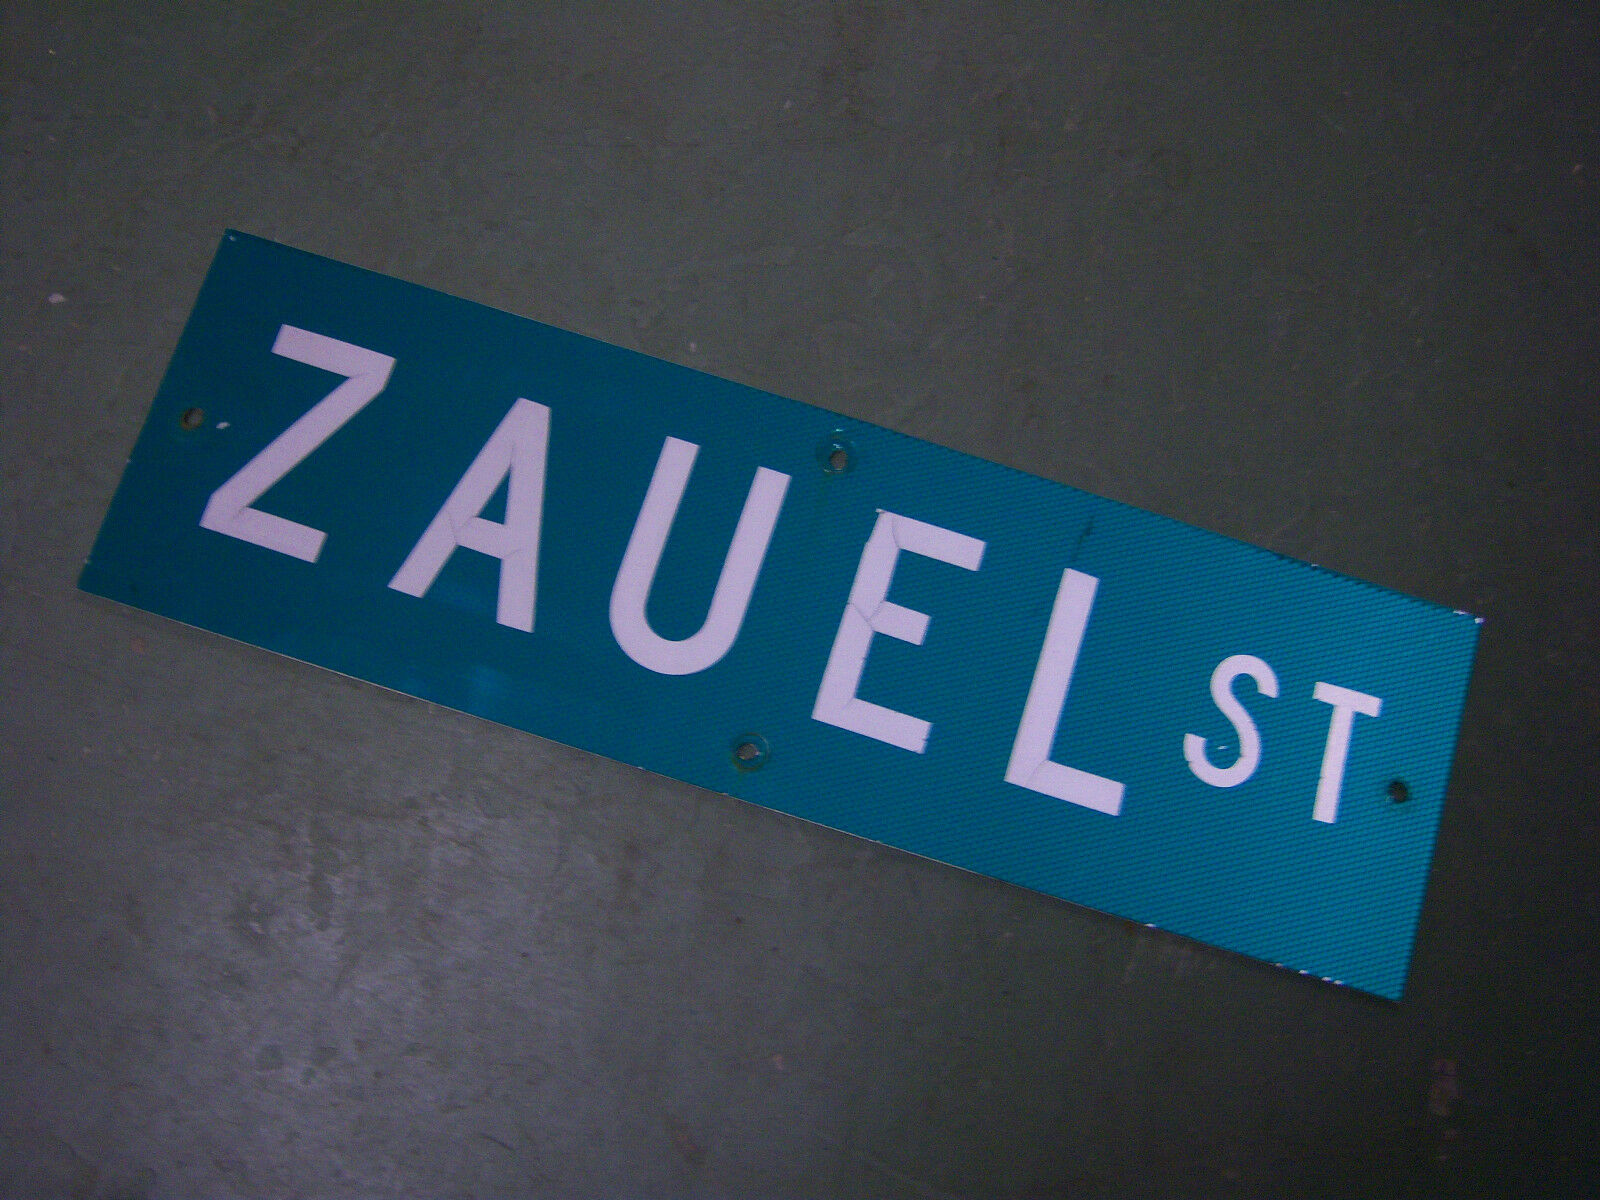 "Vintage ORIGINAL ZAUEL ST STREET SIGN 30"" X 9"" WHITE LETTERING ON GREEN"